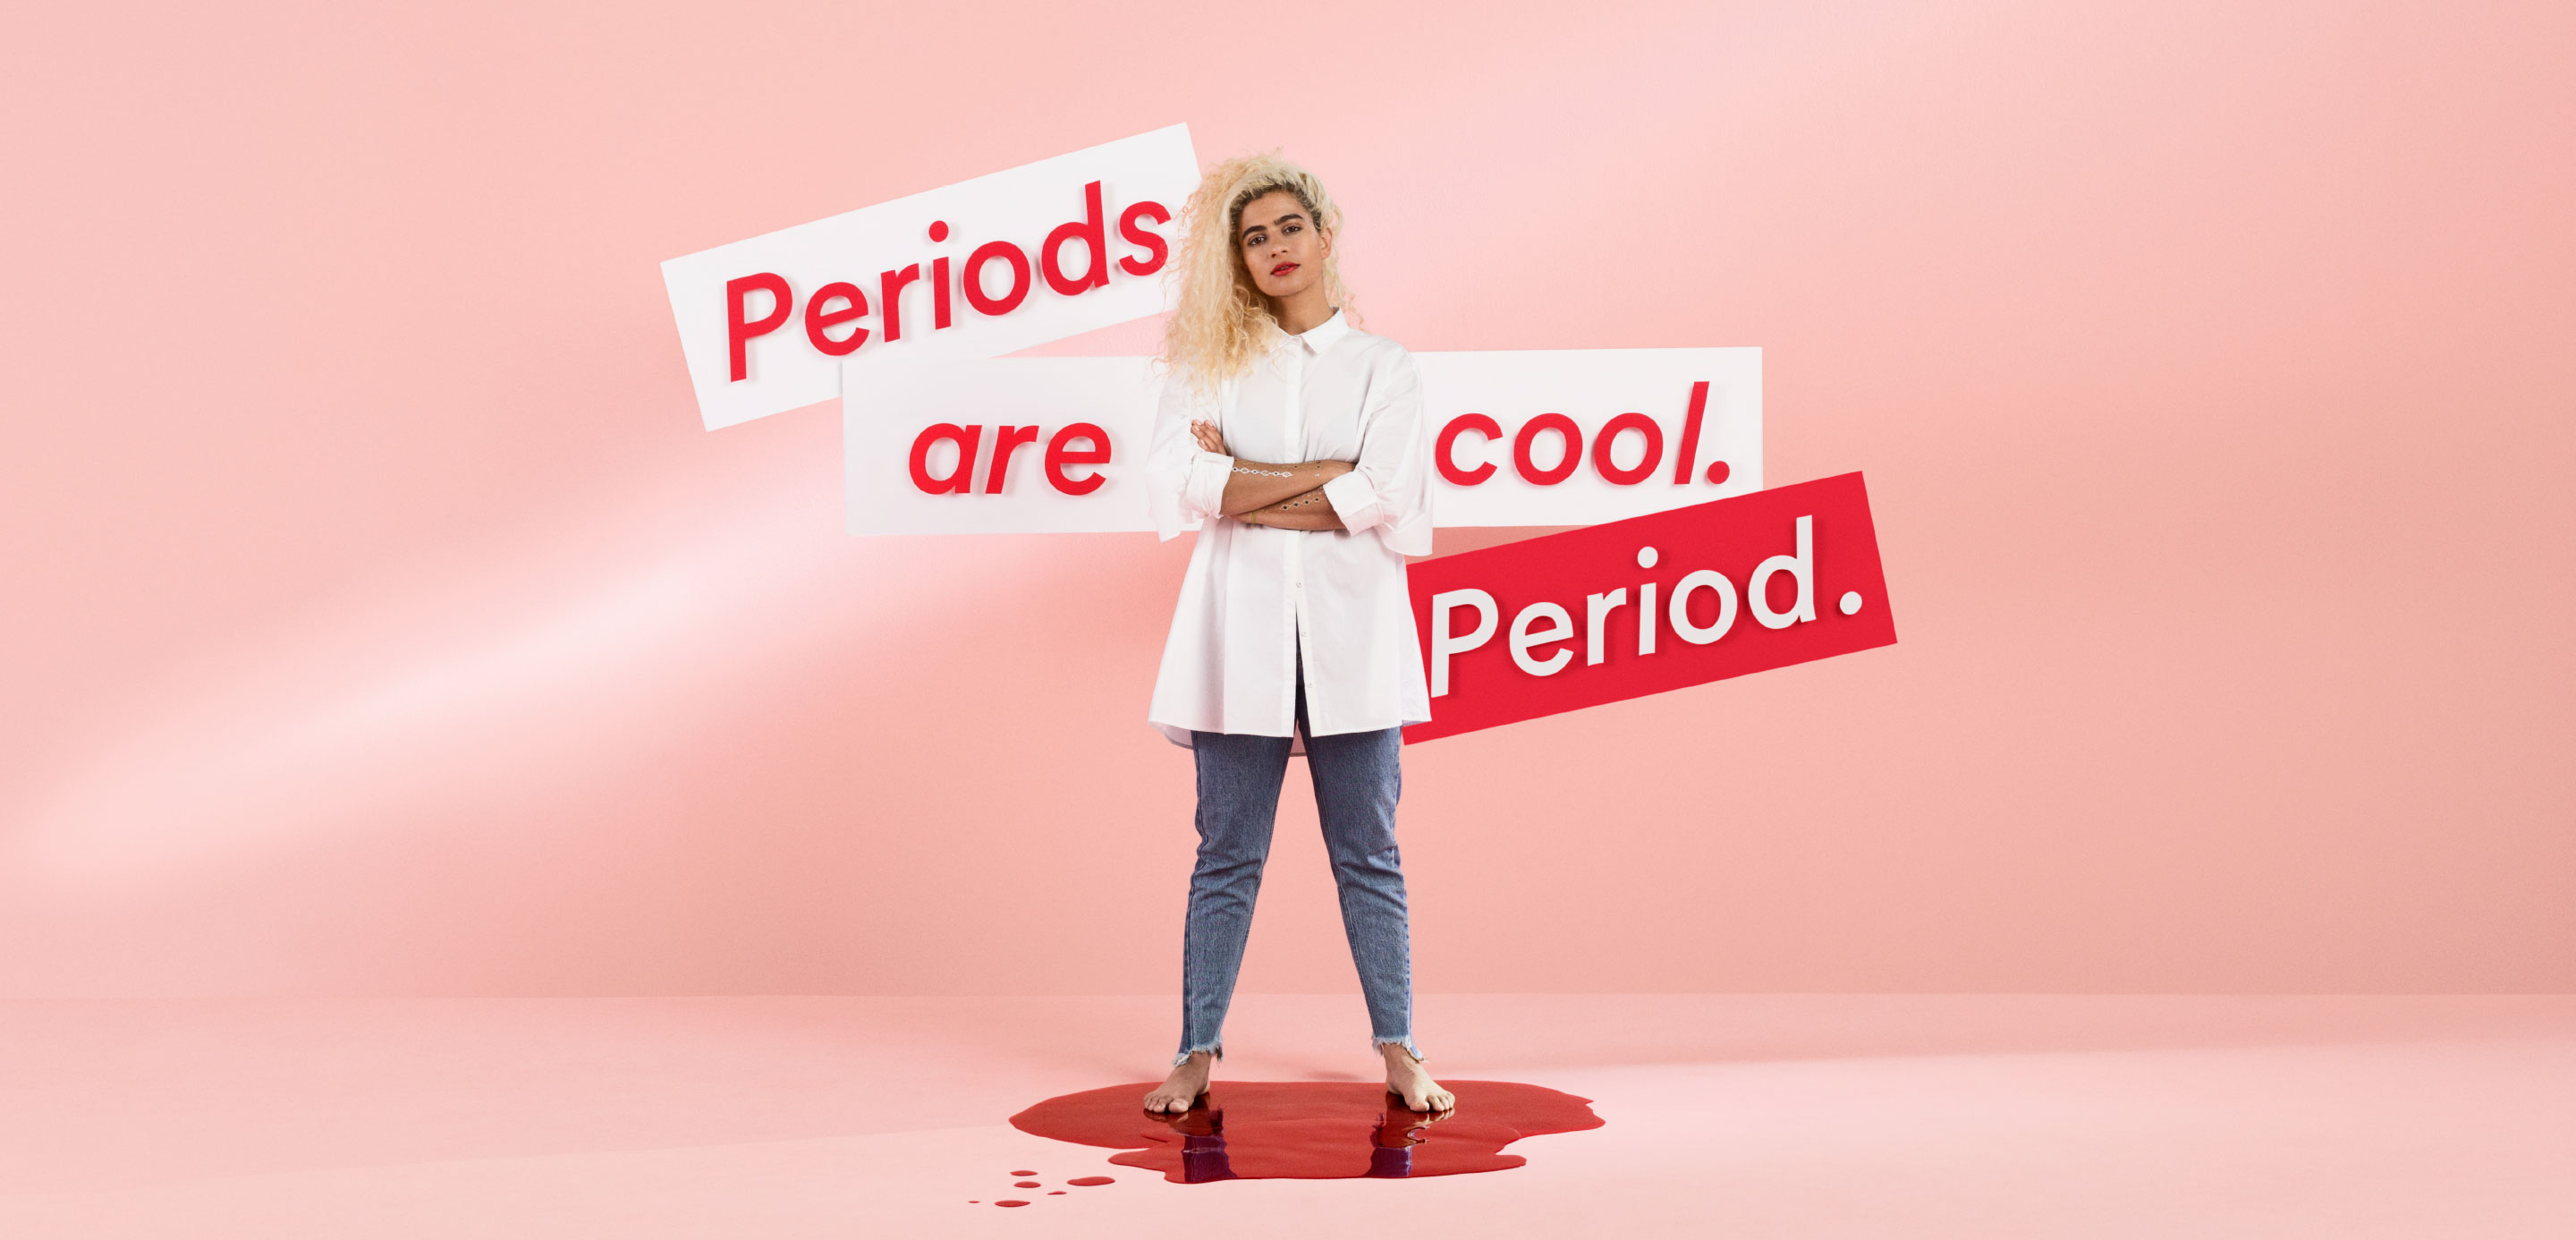 monki-periods-are-cool-period_desktop